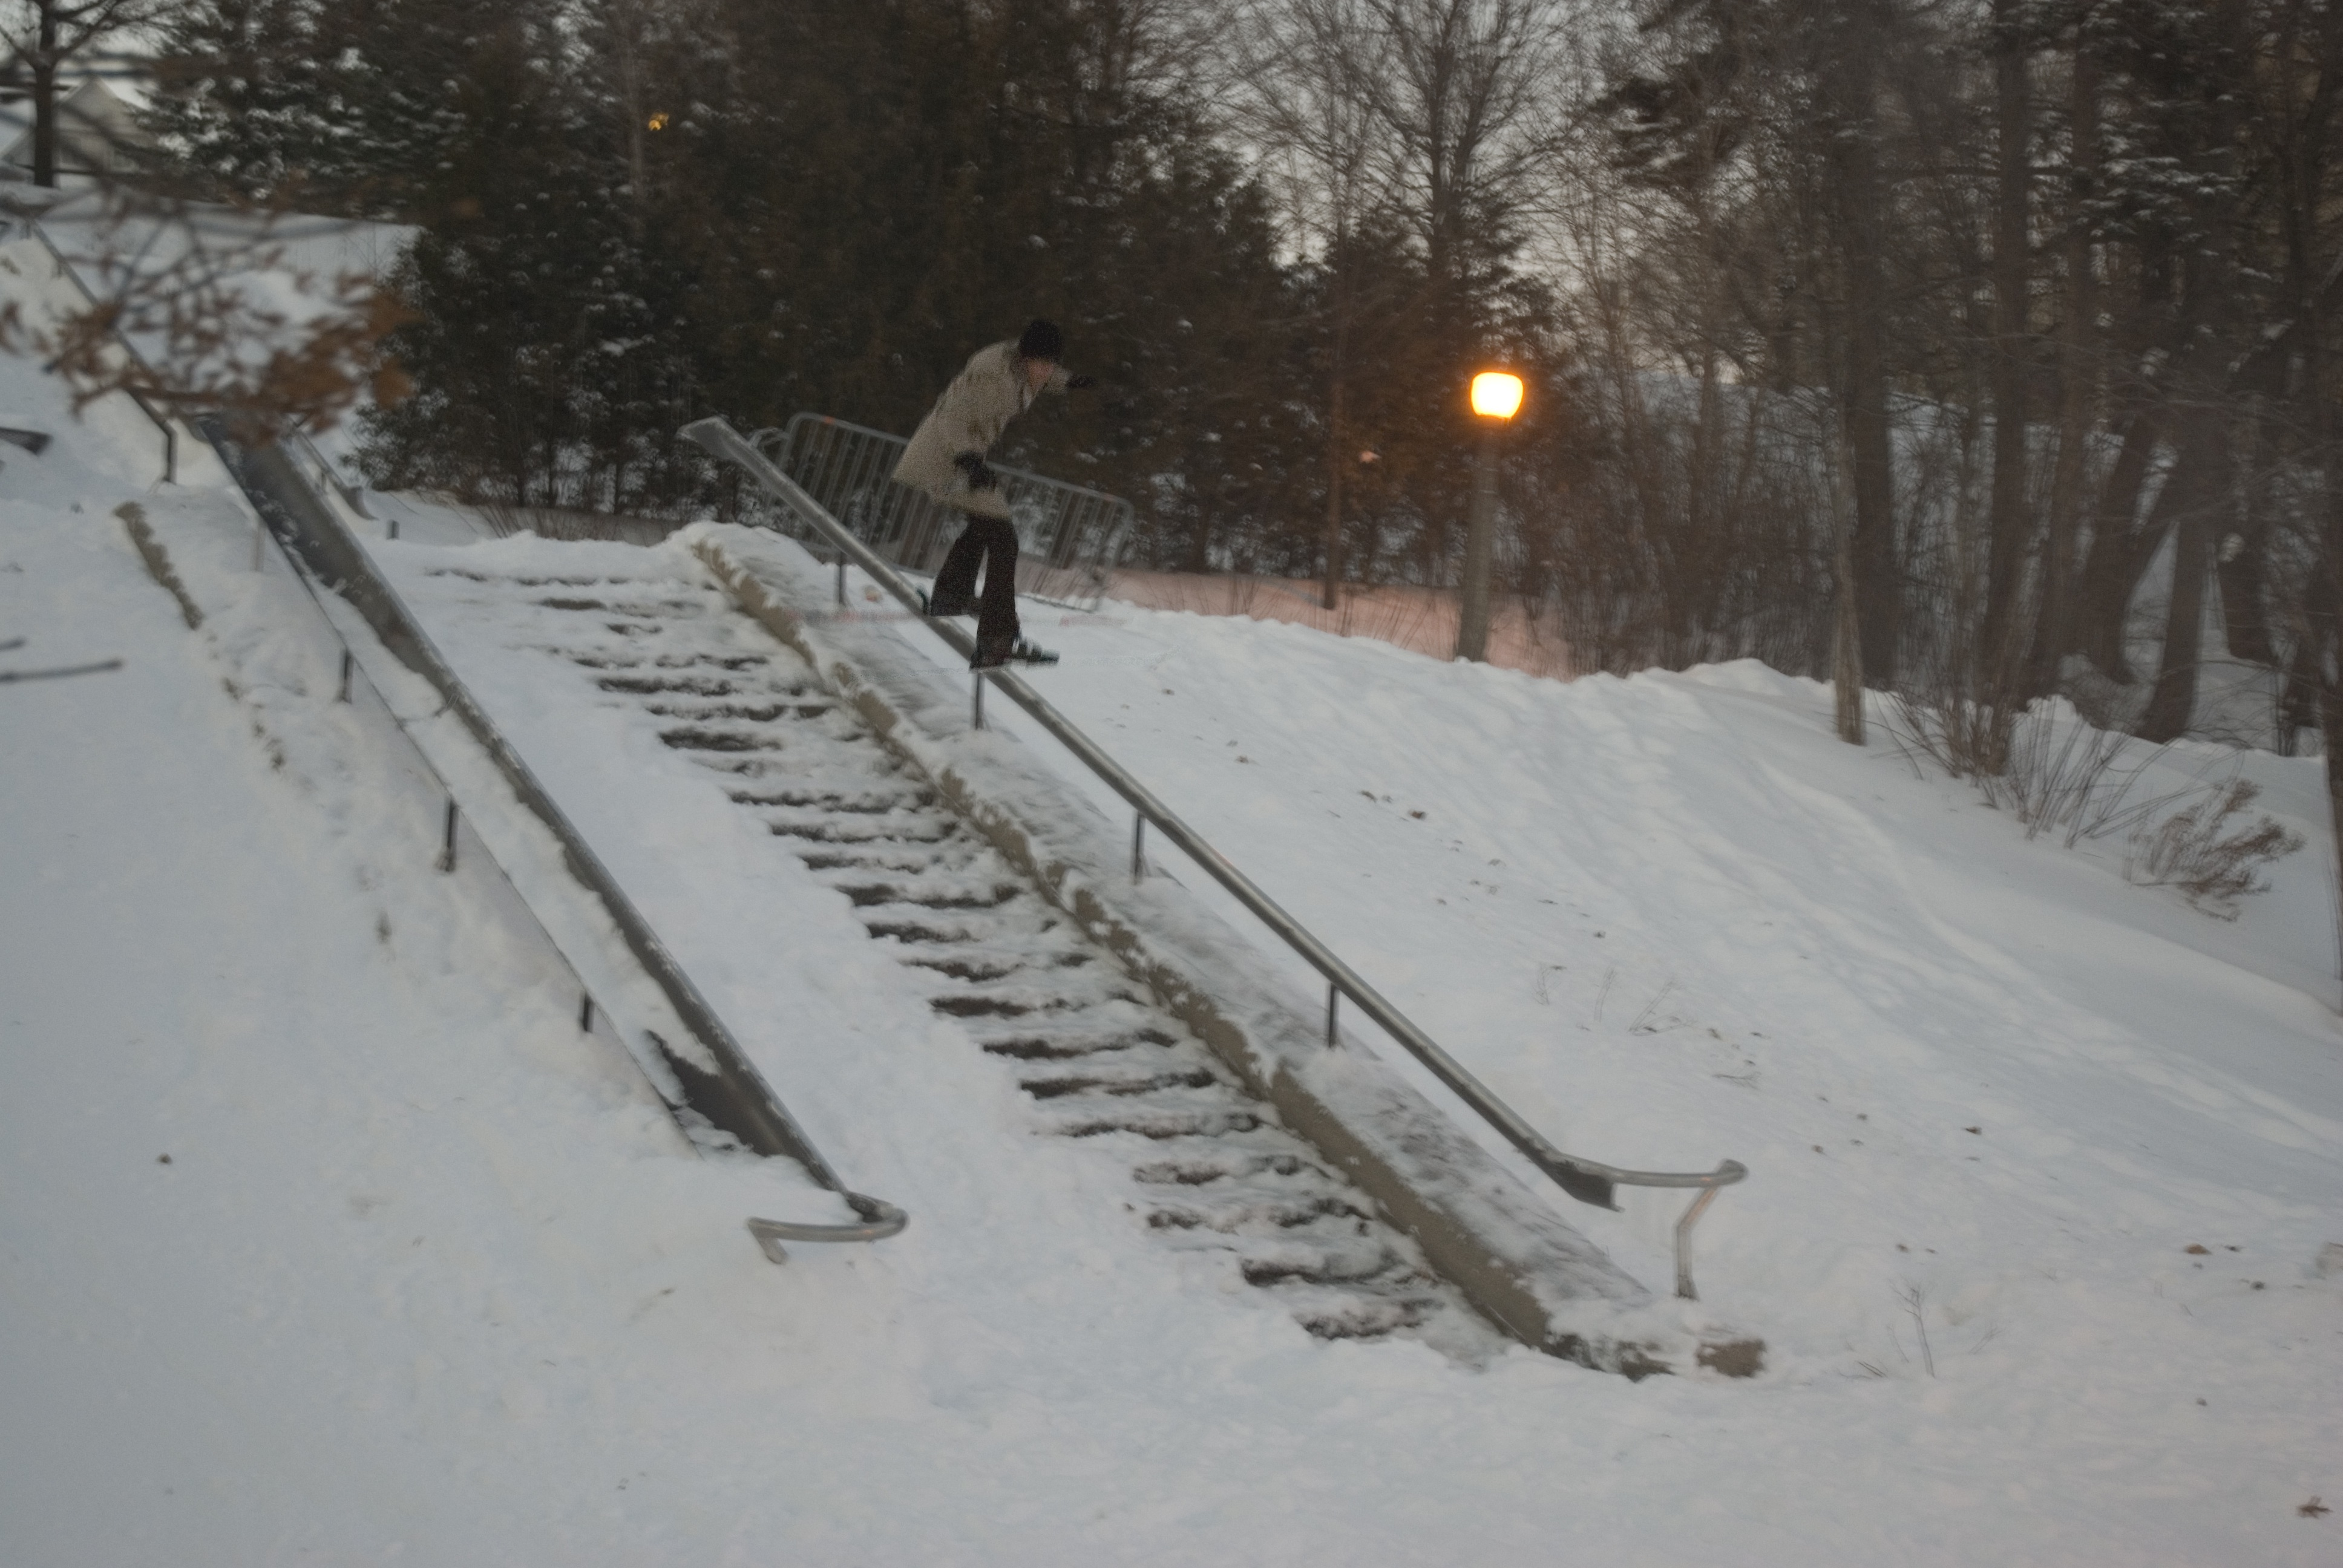 Pavel goes to a railing